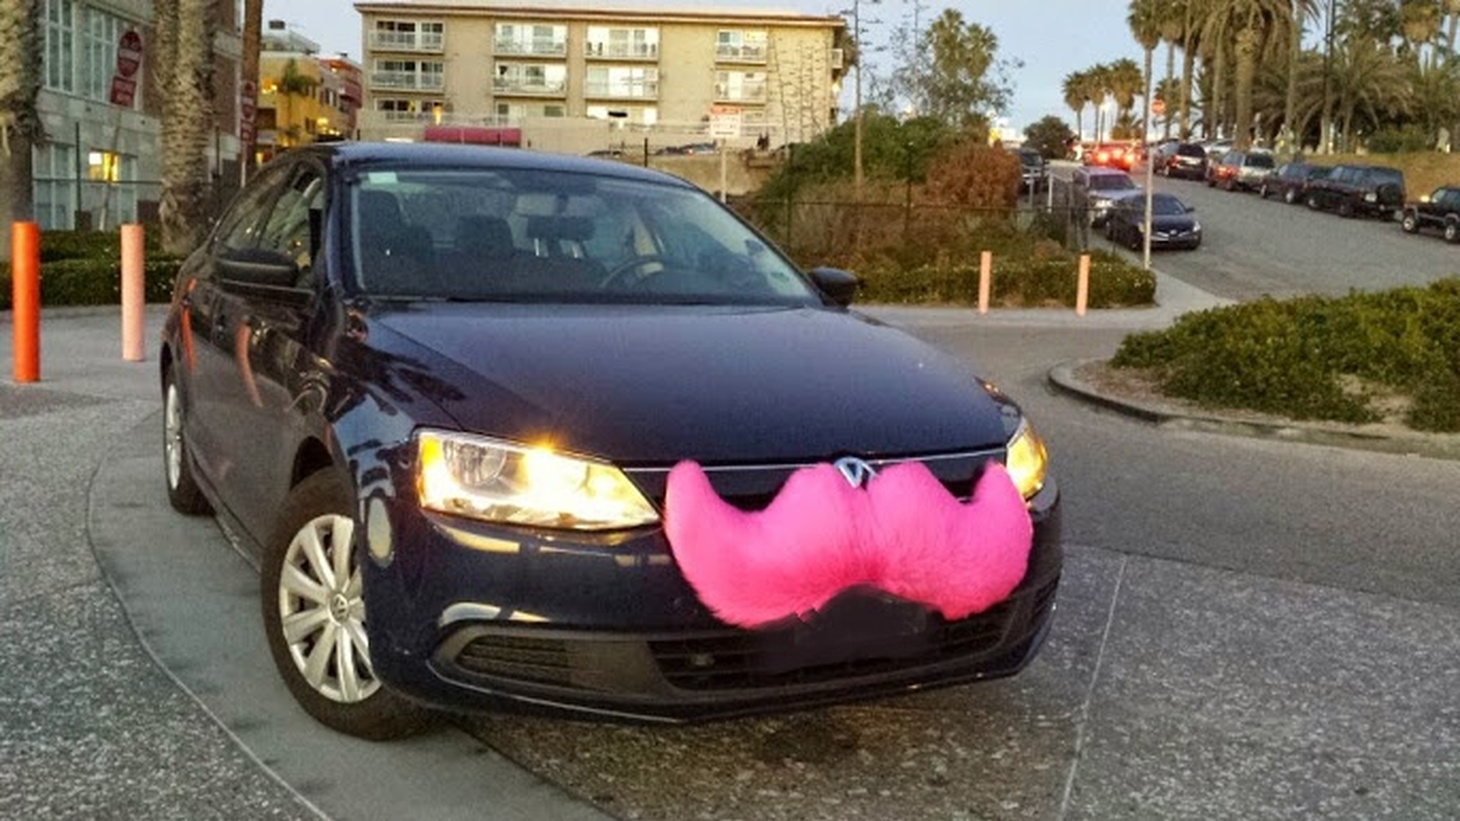 A Lyft vehicle in Santa Monica, CA.